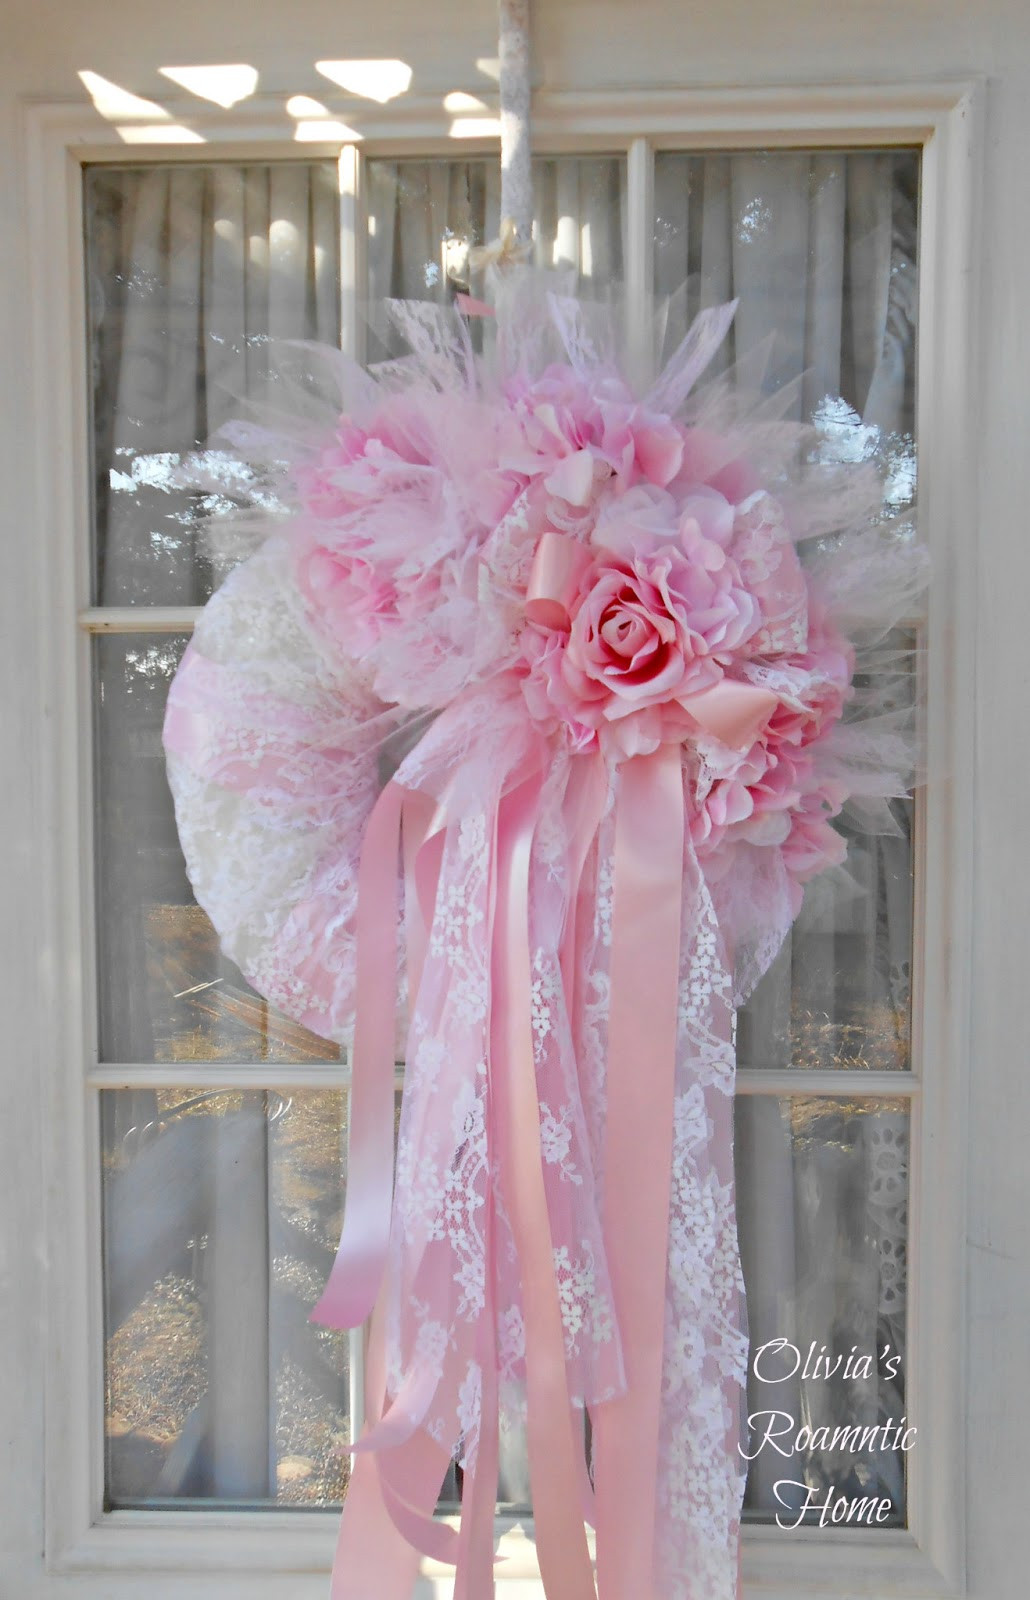 Best ideas about Shabby Chic Wreath . Save or Pin Olivia s Romantic Home Shabby Chic Valentine s Now.